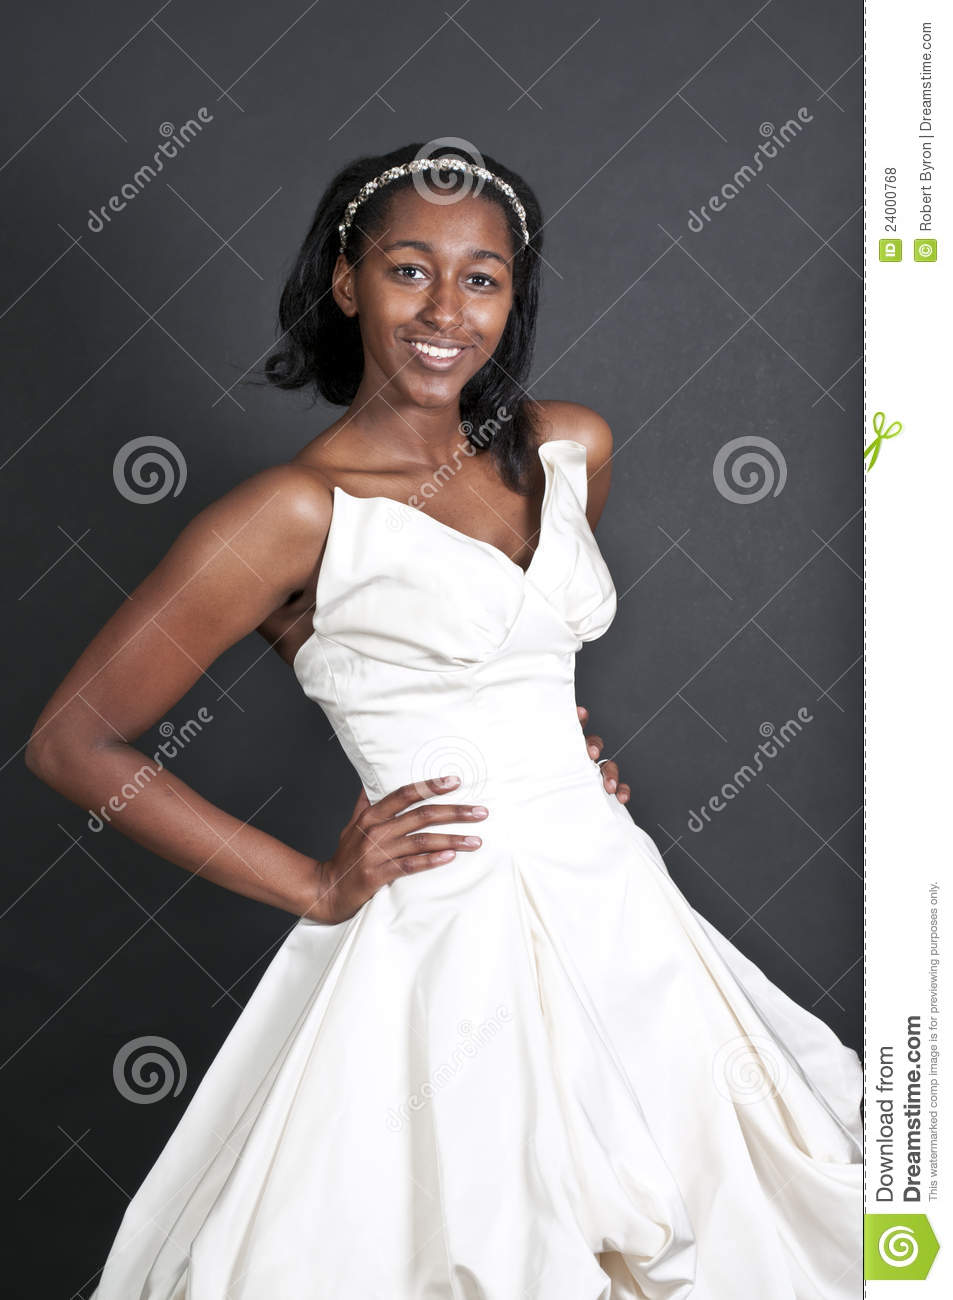 Black Woman In Wedding Dress Stock Photo - Image of newlywed, girl ...